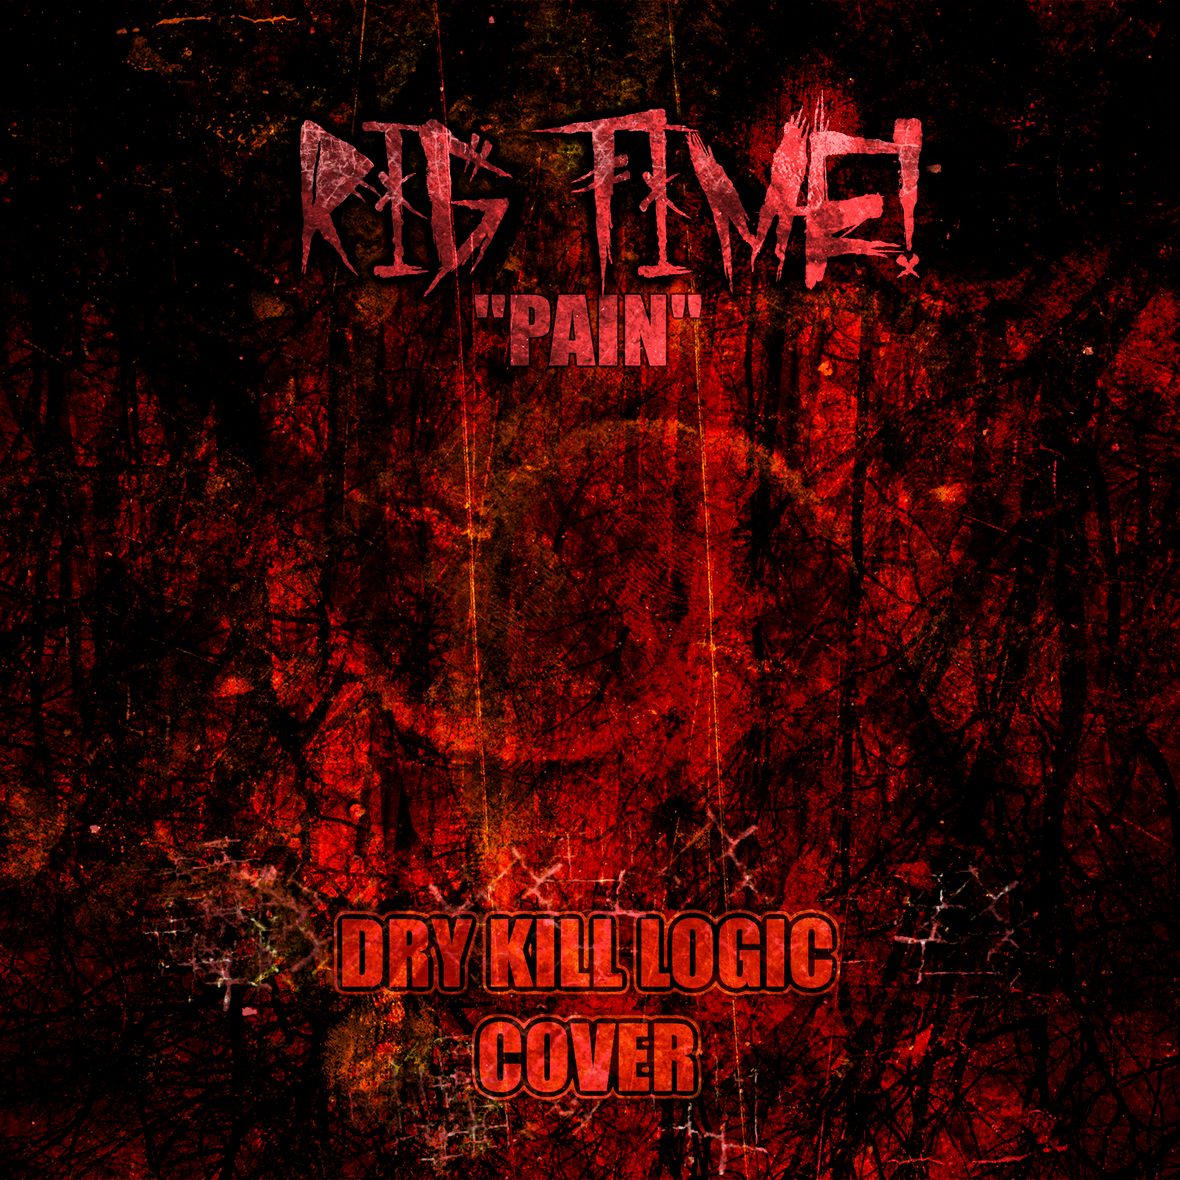 4 RIG TIME Dry Kill Logic cover single art file